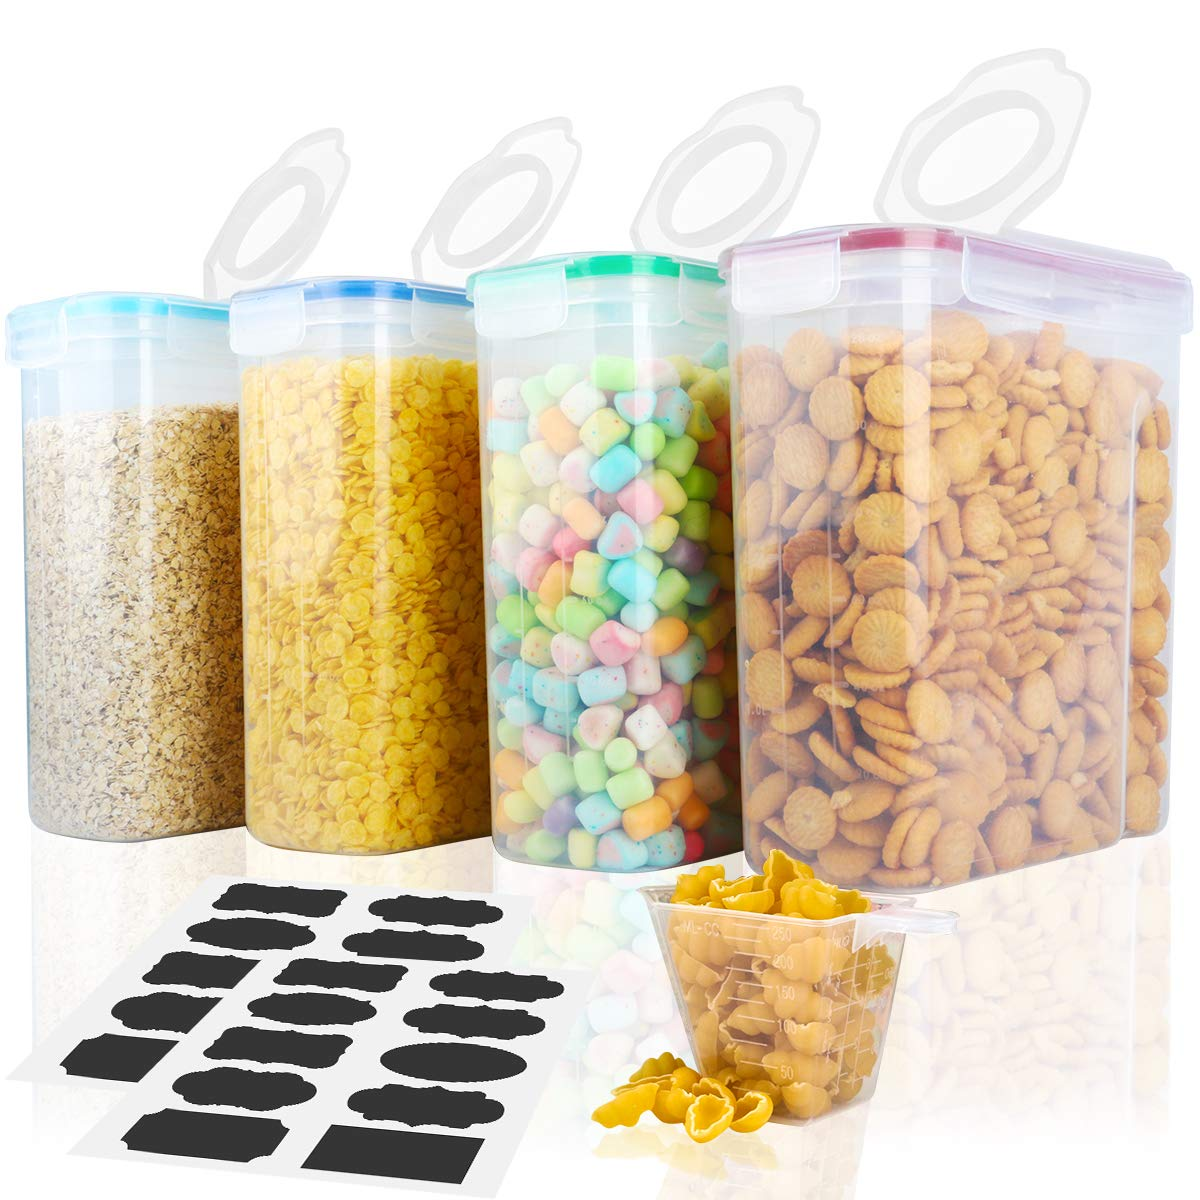 Cereal Container,MCIRCO Food Storage Containers,Airtight Flour Containers Keeper Set of 4